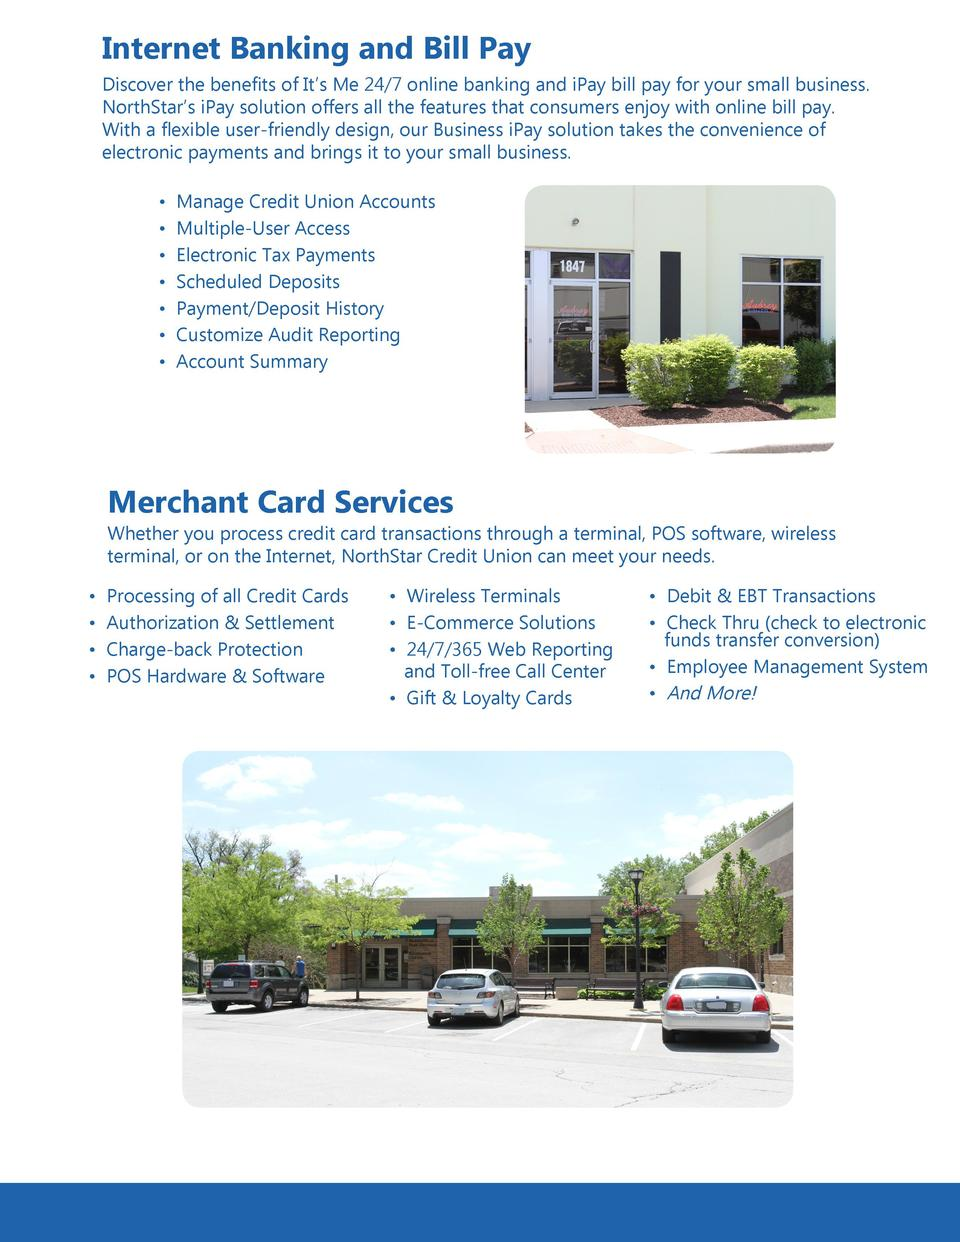 Business Services - NorthStar Credit Union